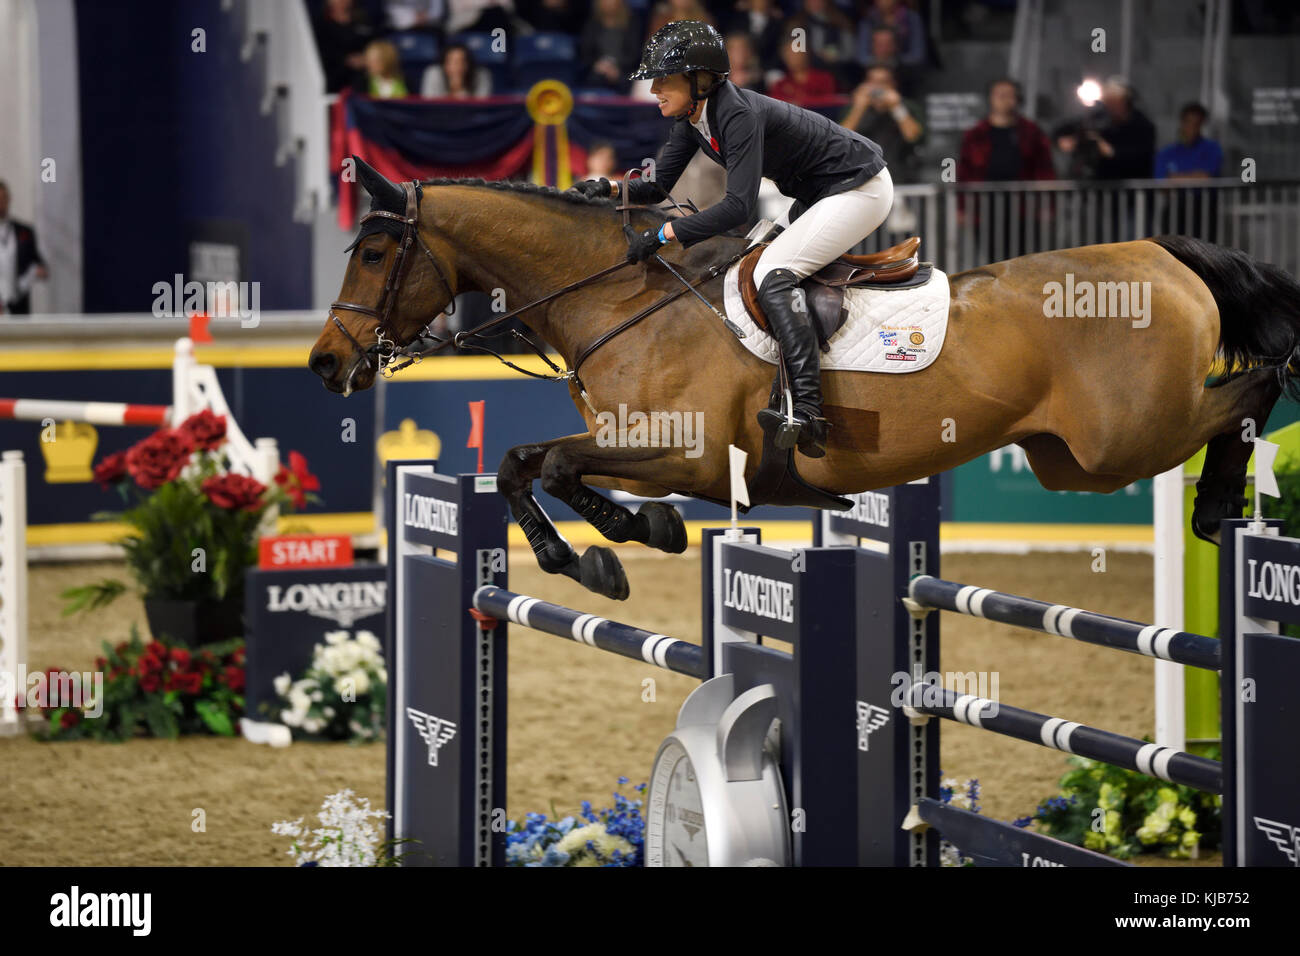 Amy Miller Canada equitazione Heros in Longines FEI World Cup Show Jumping concorrenza presso il Royal Horse Show Immagini Stock